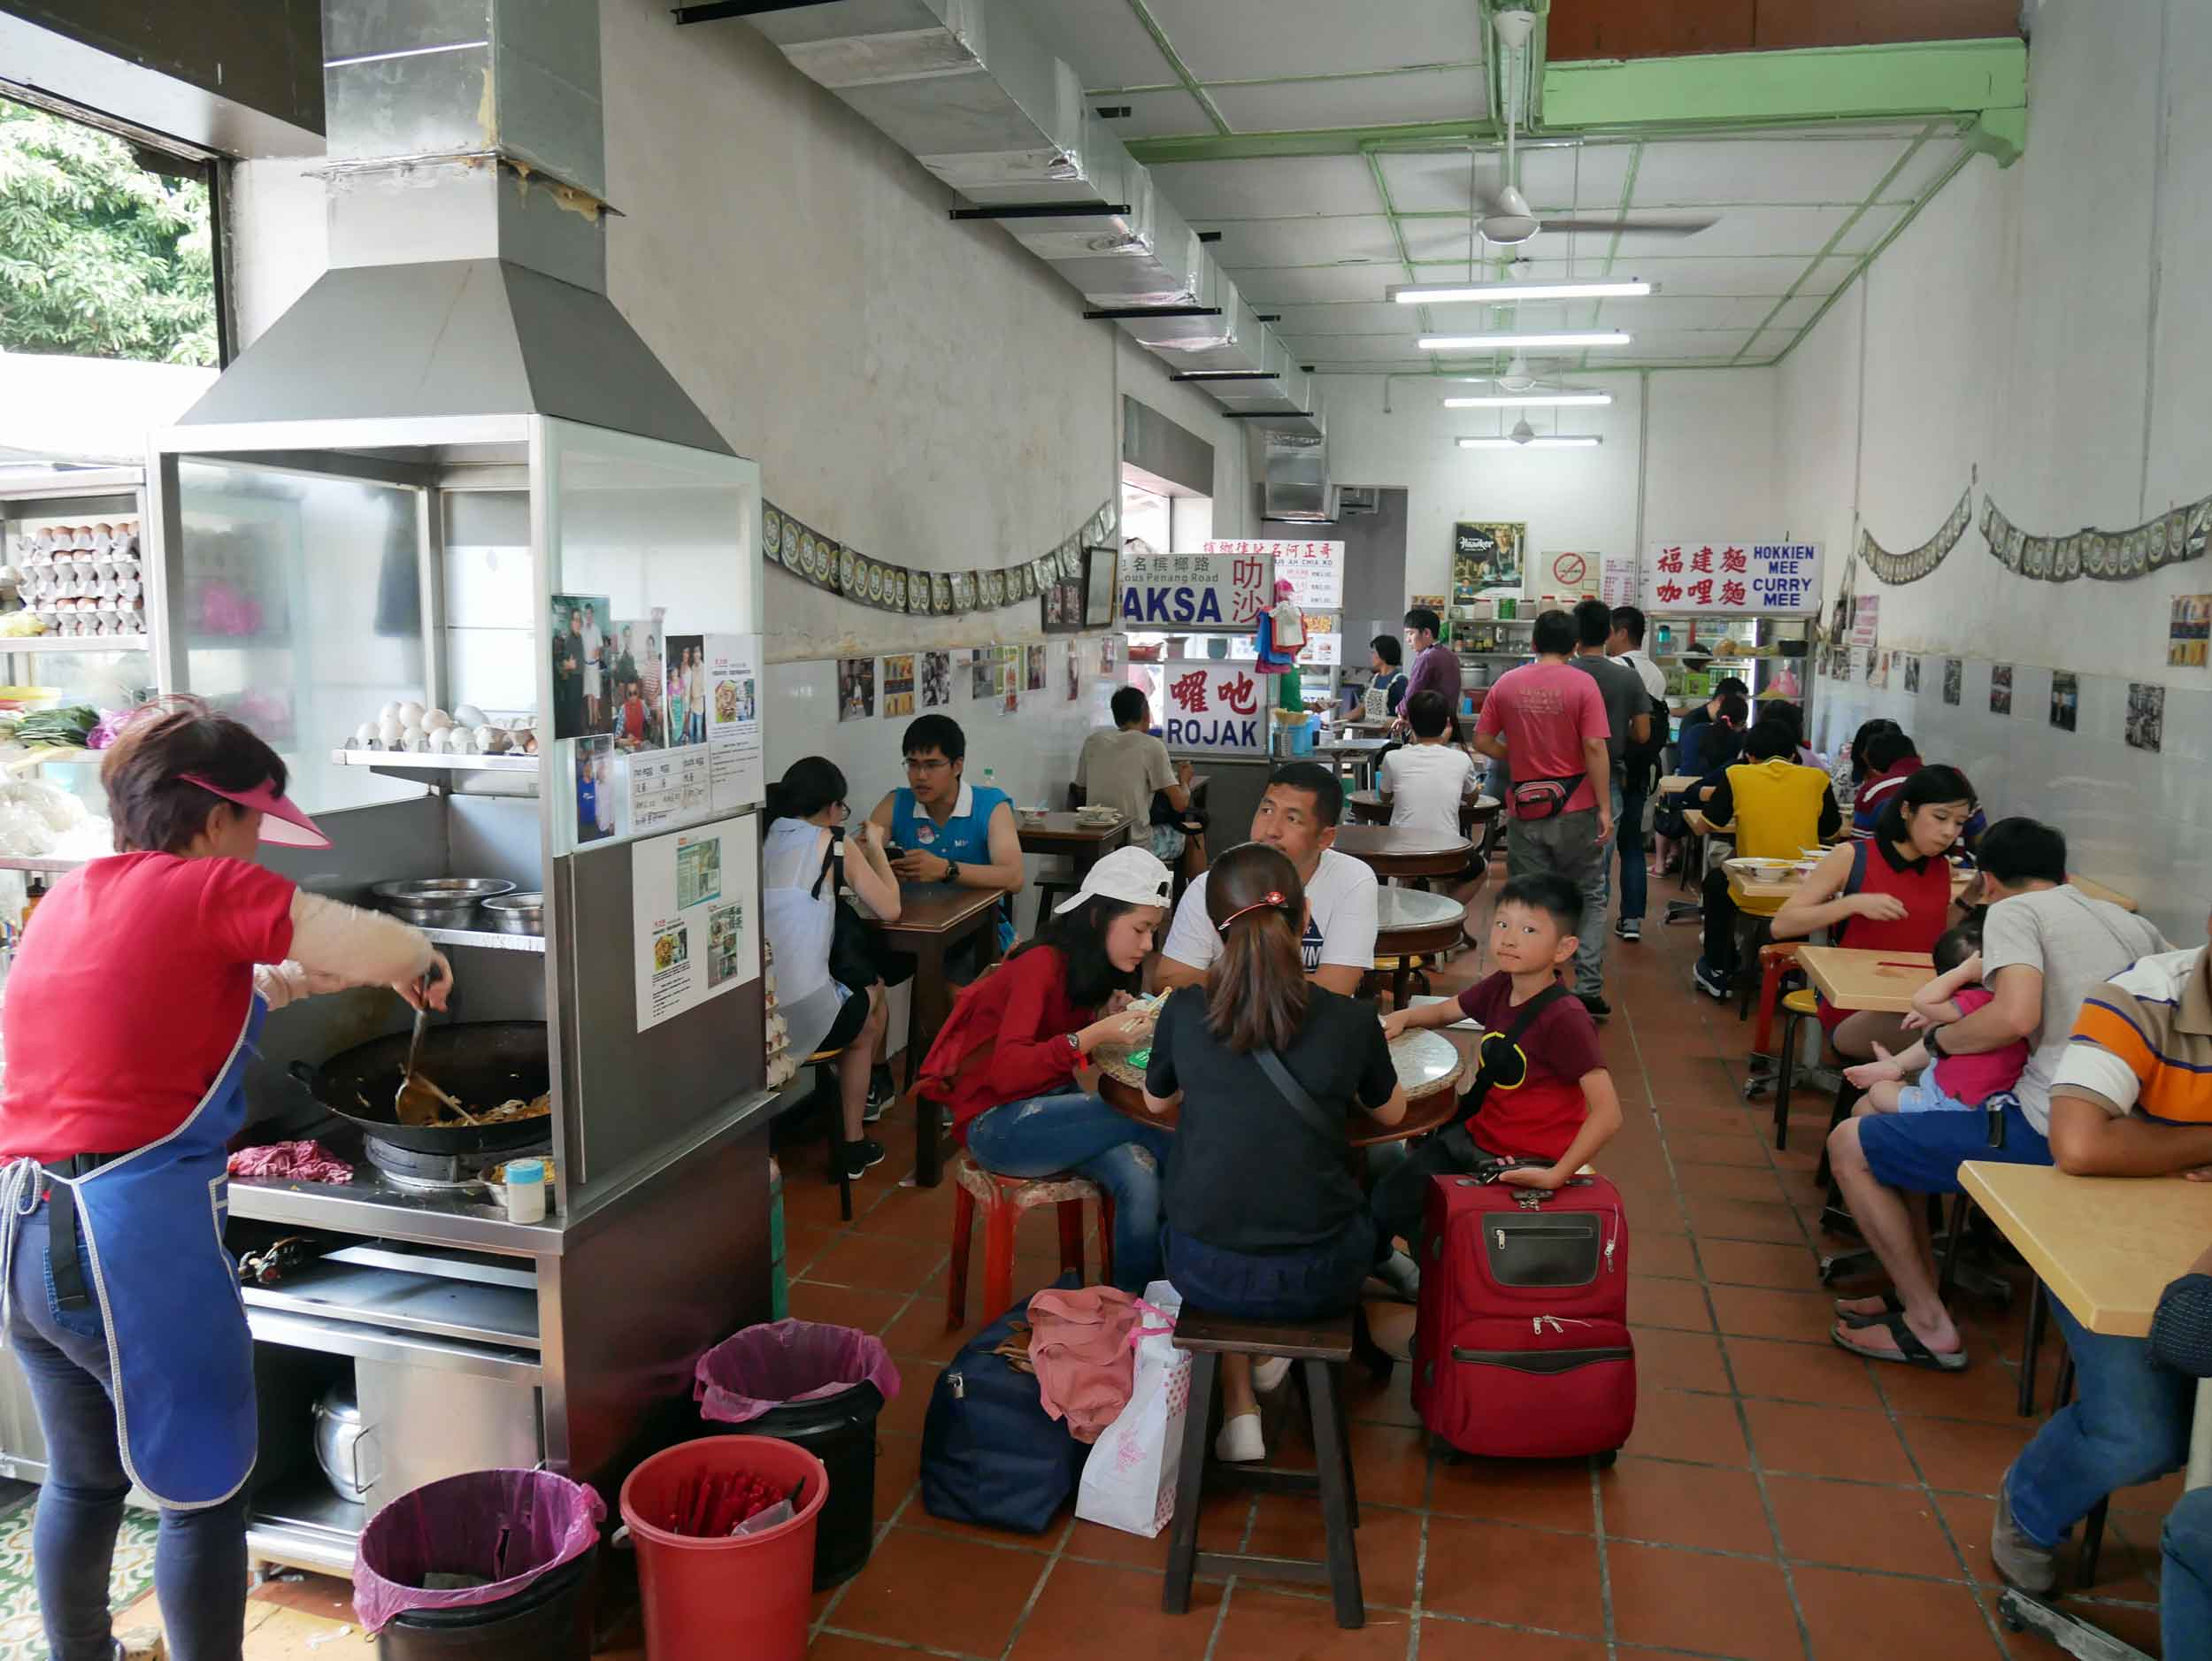 Arriving midday in George Town, we headed straight to Joo Hoi Cafe for all the Malay street food delights (April 25).